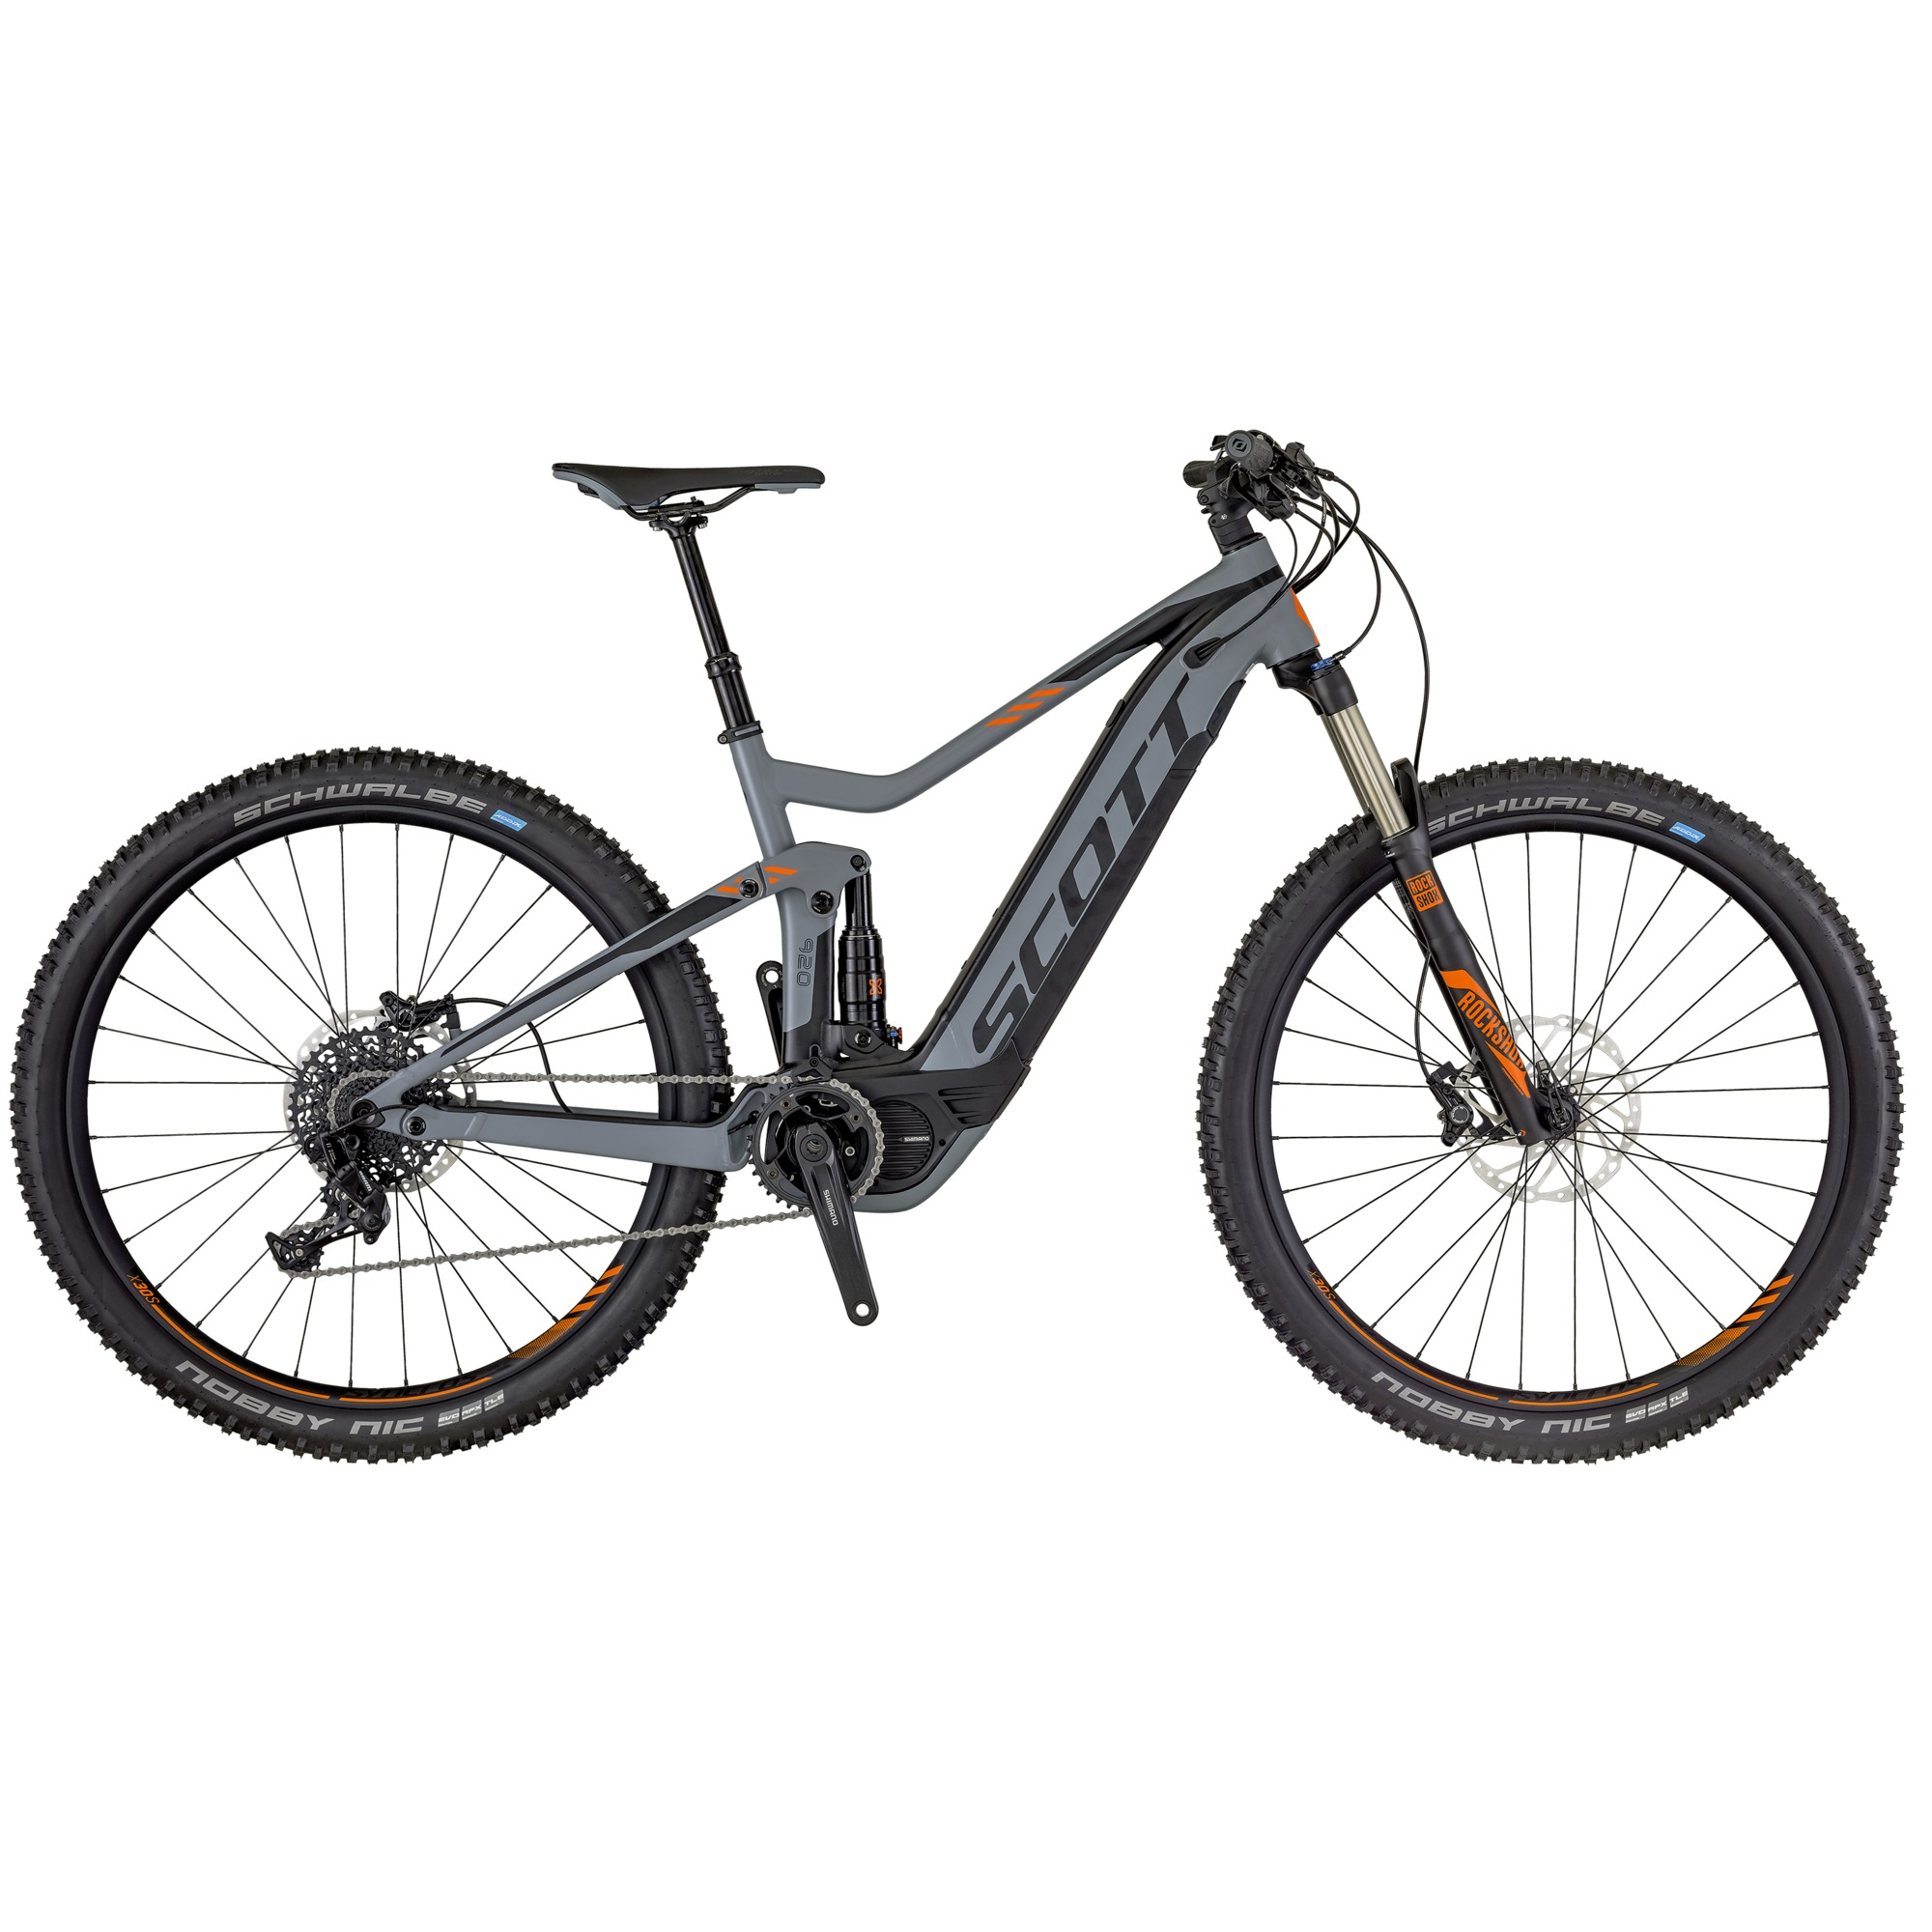 SCOTT E-Genius 920 Bike S - Zweirad Homann